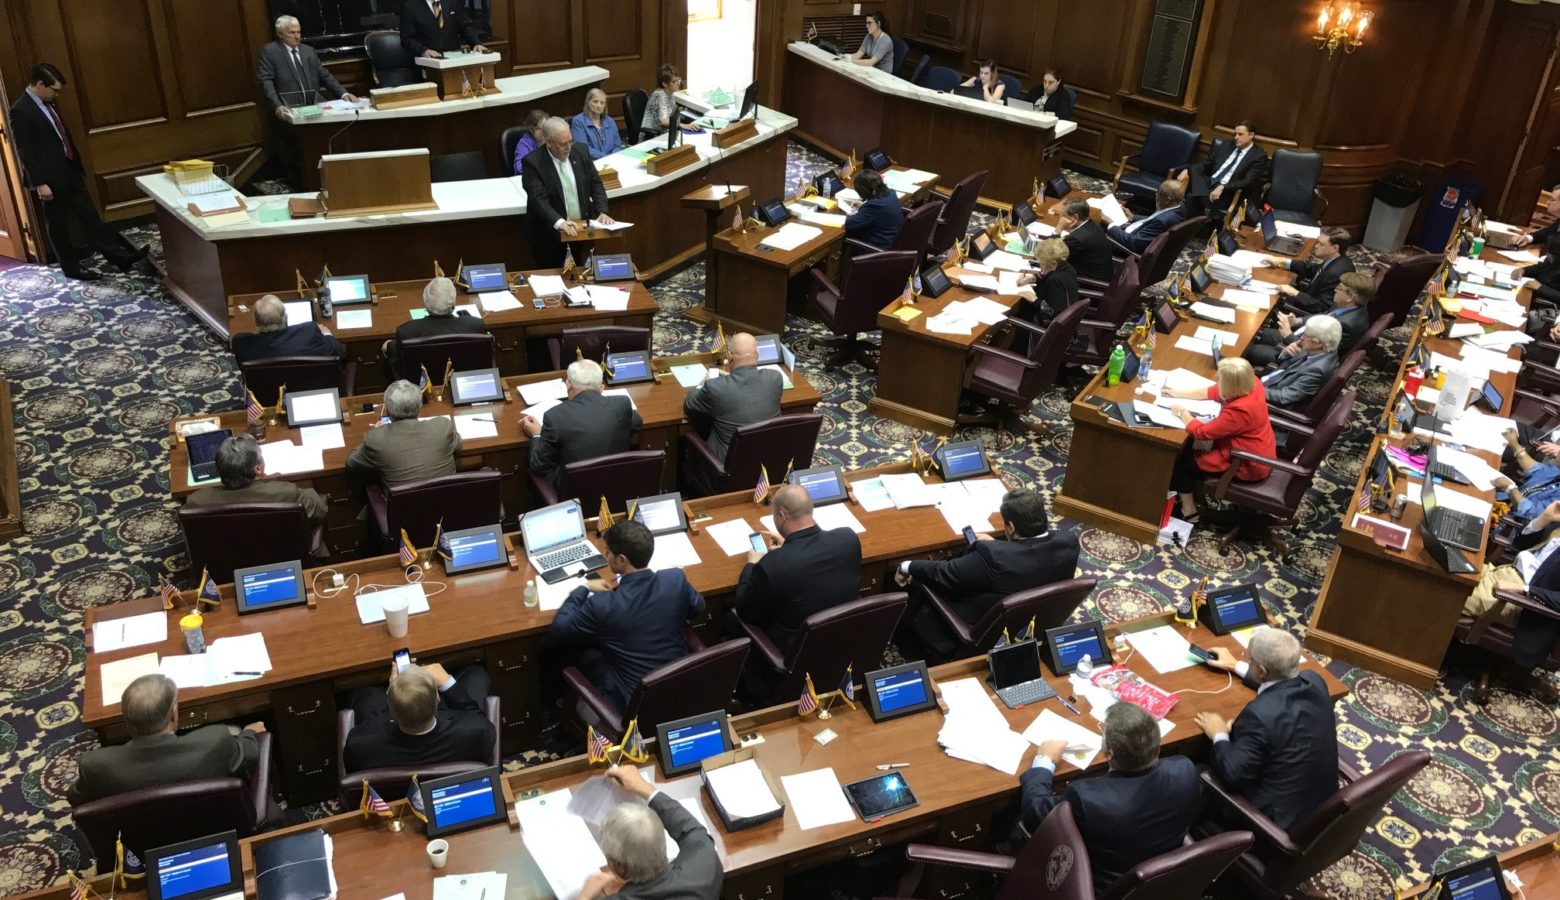 Rep. Matt Lehman (R-Berne) presents the short-term rentals bill to the House Chamber. (Brandon Smith/IPB News)